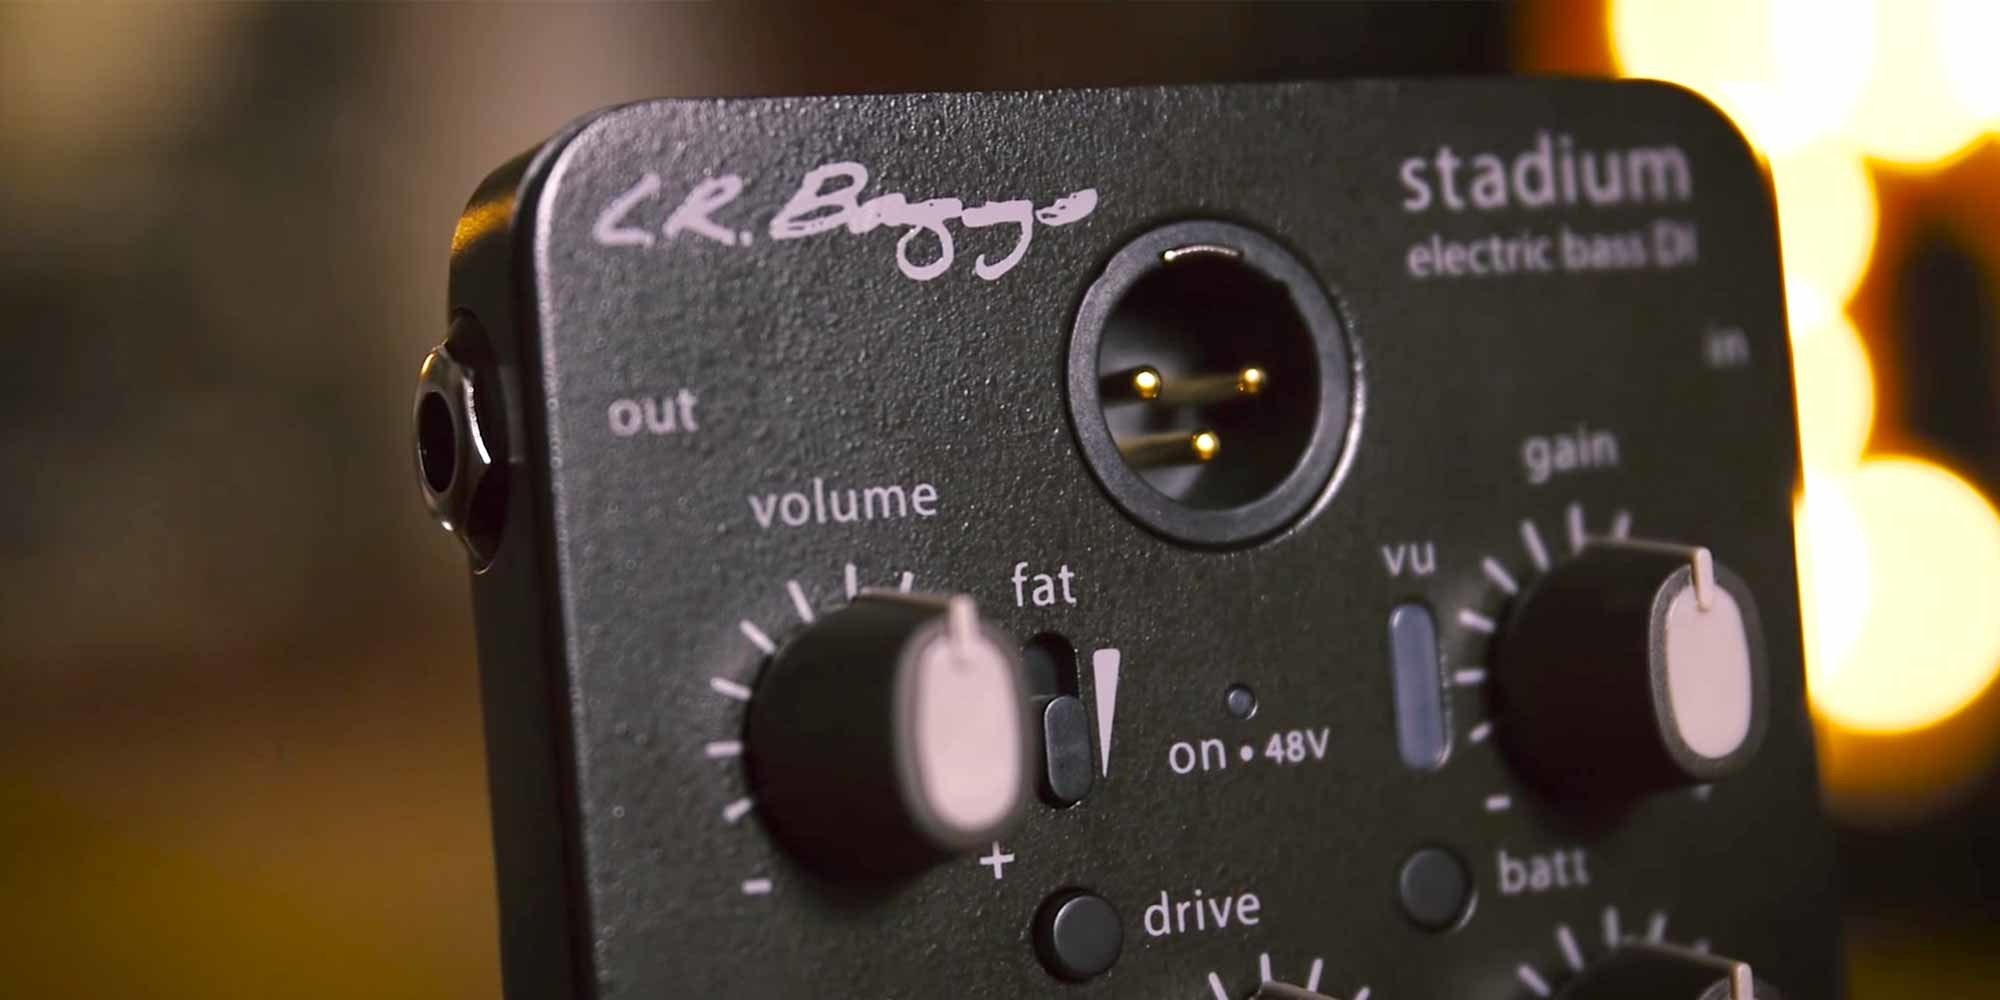 5 Essential Bass Di Pedals Reverb News Out In The Stadium Battery Is Source Of Electricity Our Sure You Can Just Plug Your Into A Regular Old Big Muff But When Pedal Specifically Configured For It Sounds